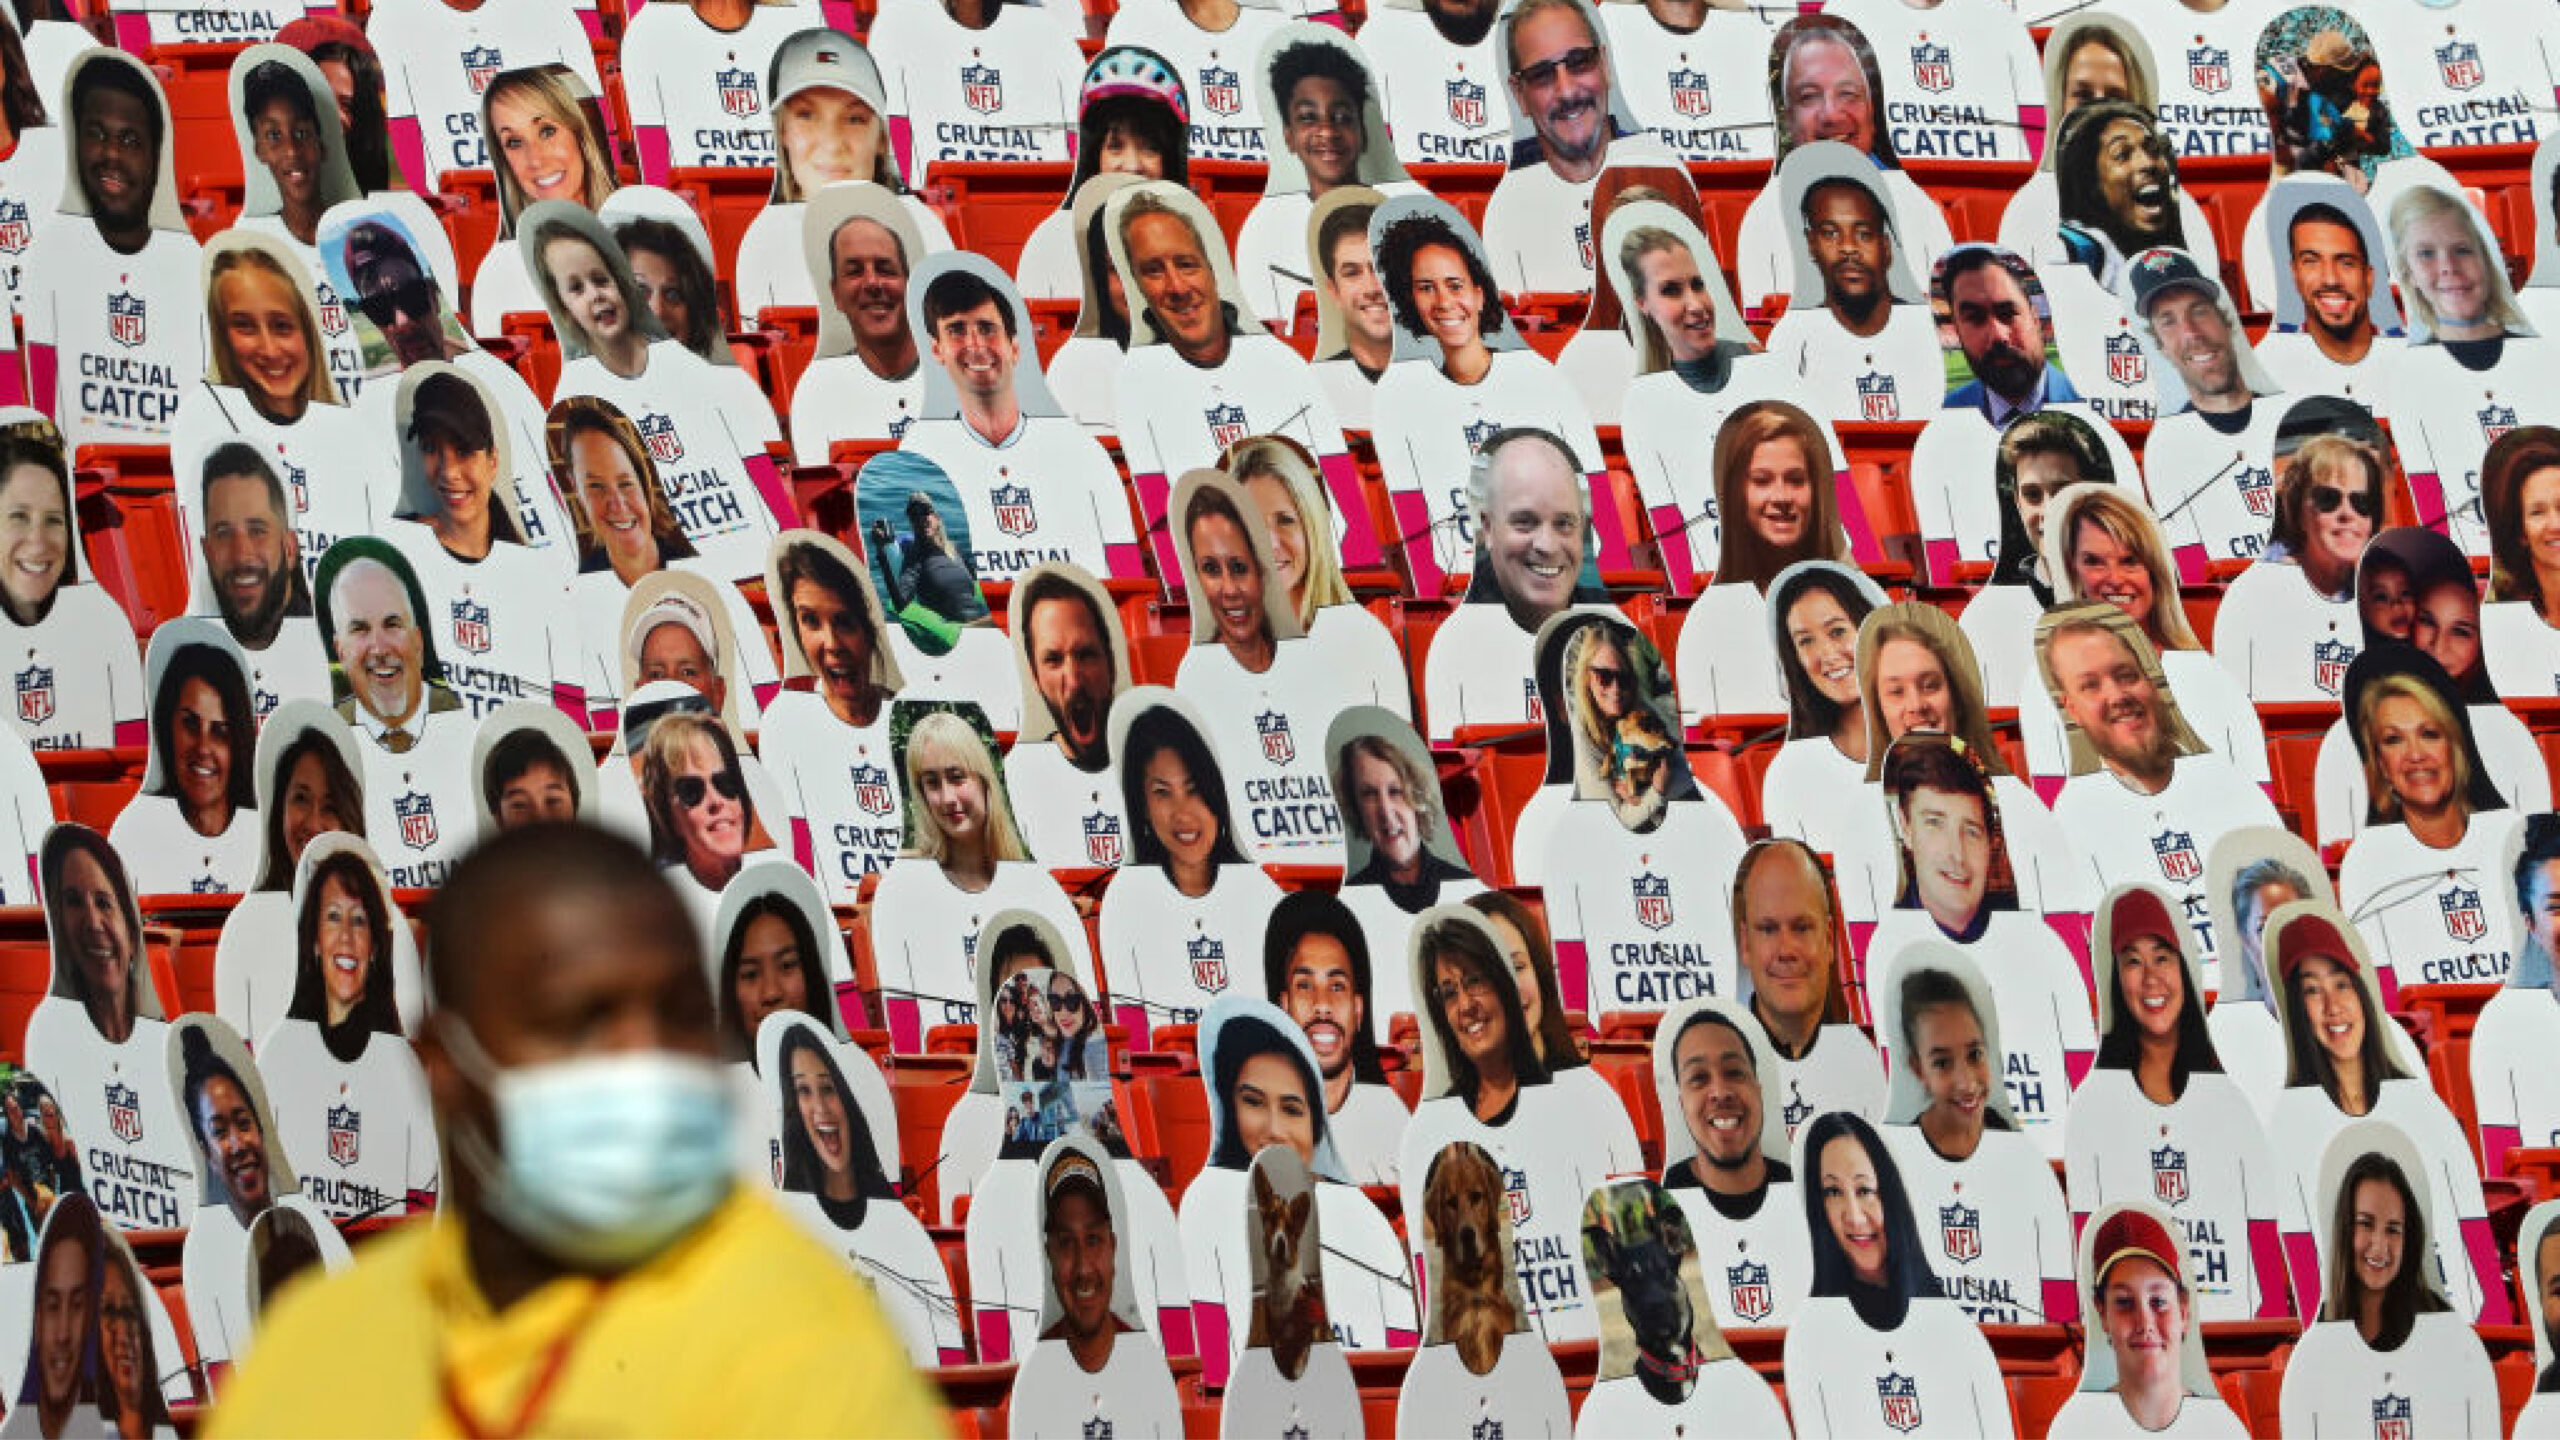 LANDOVER, MARYLAND - OCTOBER 04: Cardboard cutouts of fans are seen in the spectator seating in front of a security guard wearing a surgical face mask during the second half at FedExField on October 4, 2020 in Landover, Maryland. Due to the coronavirus pandemic, the Washington Football Team did not host fans during the game. (Photo by Patrick Smith/Getty Images)